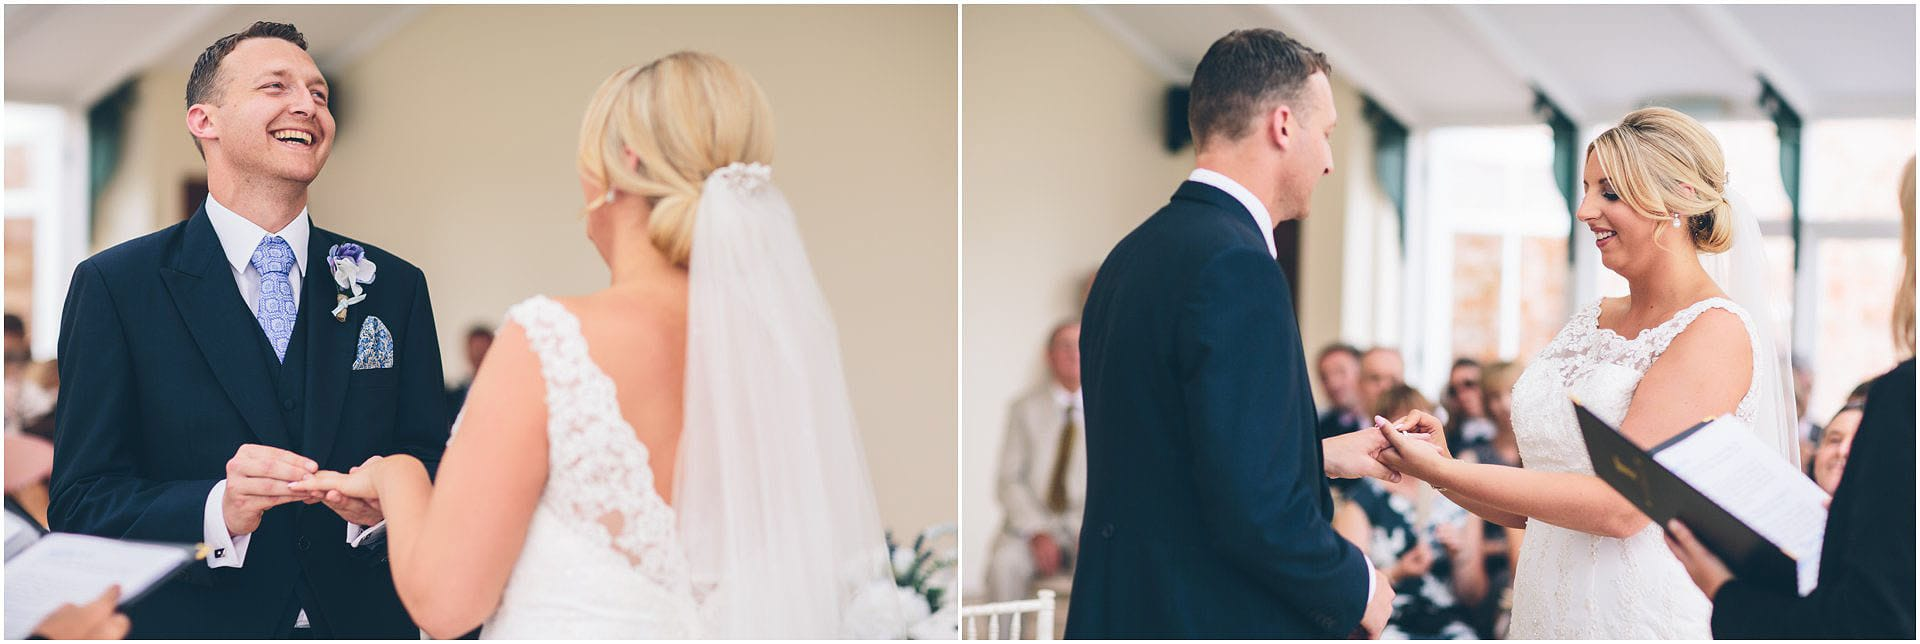 Combermere_Abbey_Wedding_Photography_0076